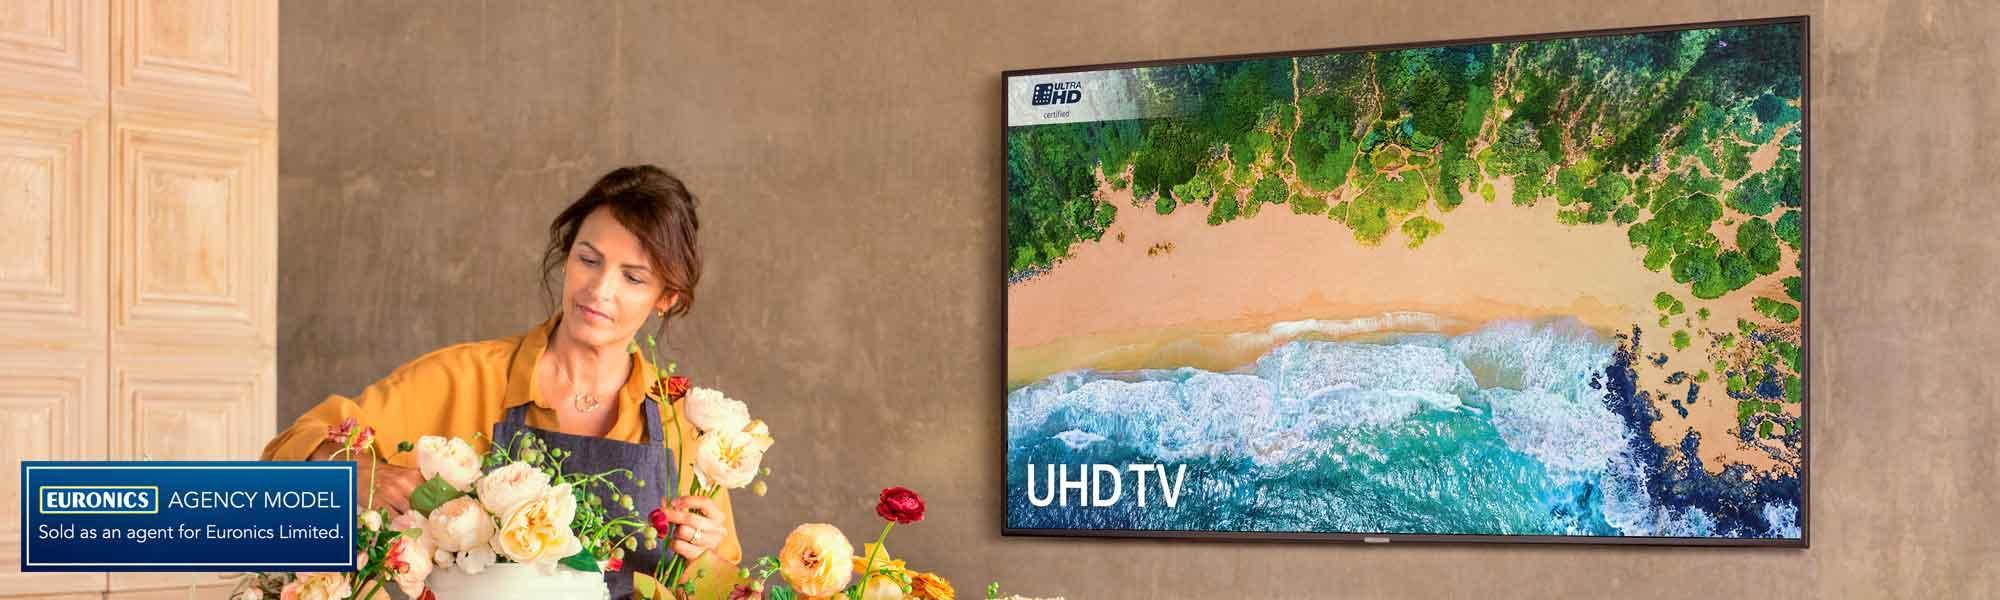 Samsung UE65NU7100 65 inch 4K Ultra HD HDR Smart LED TV